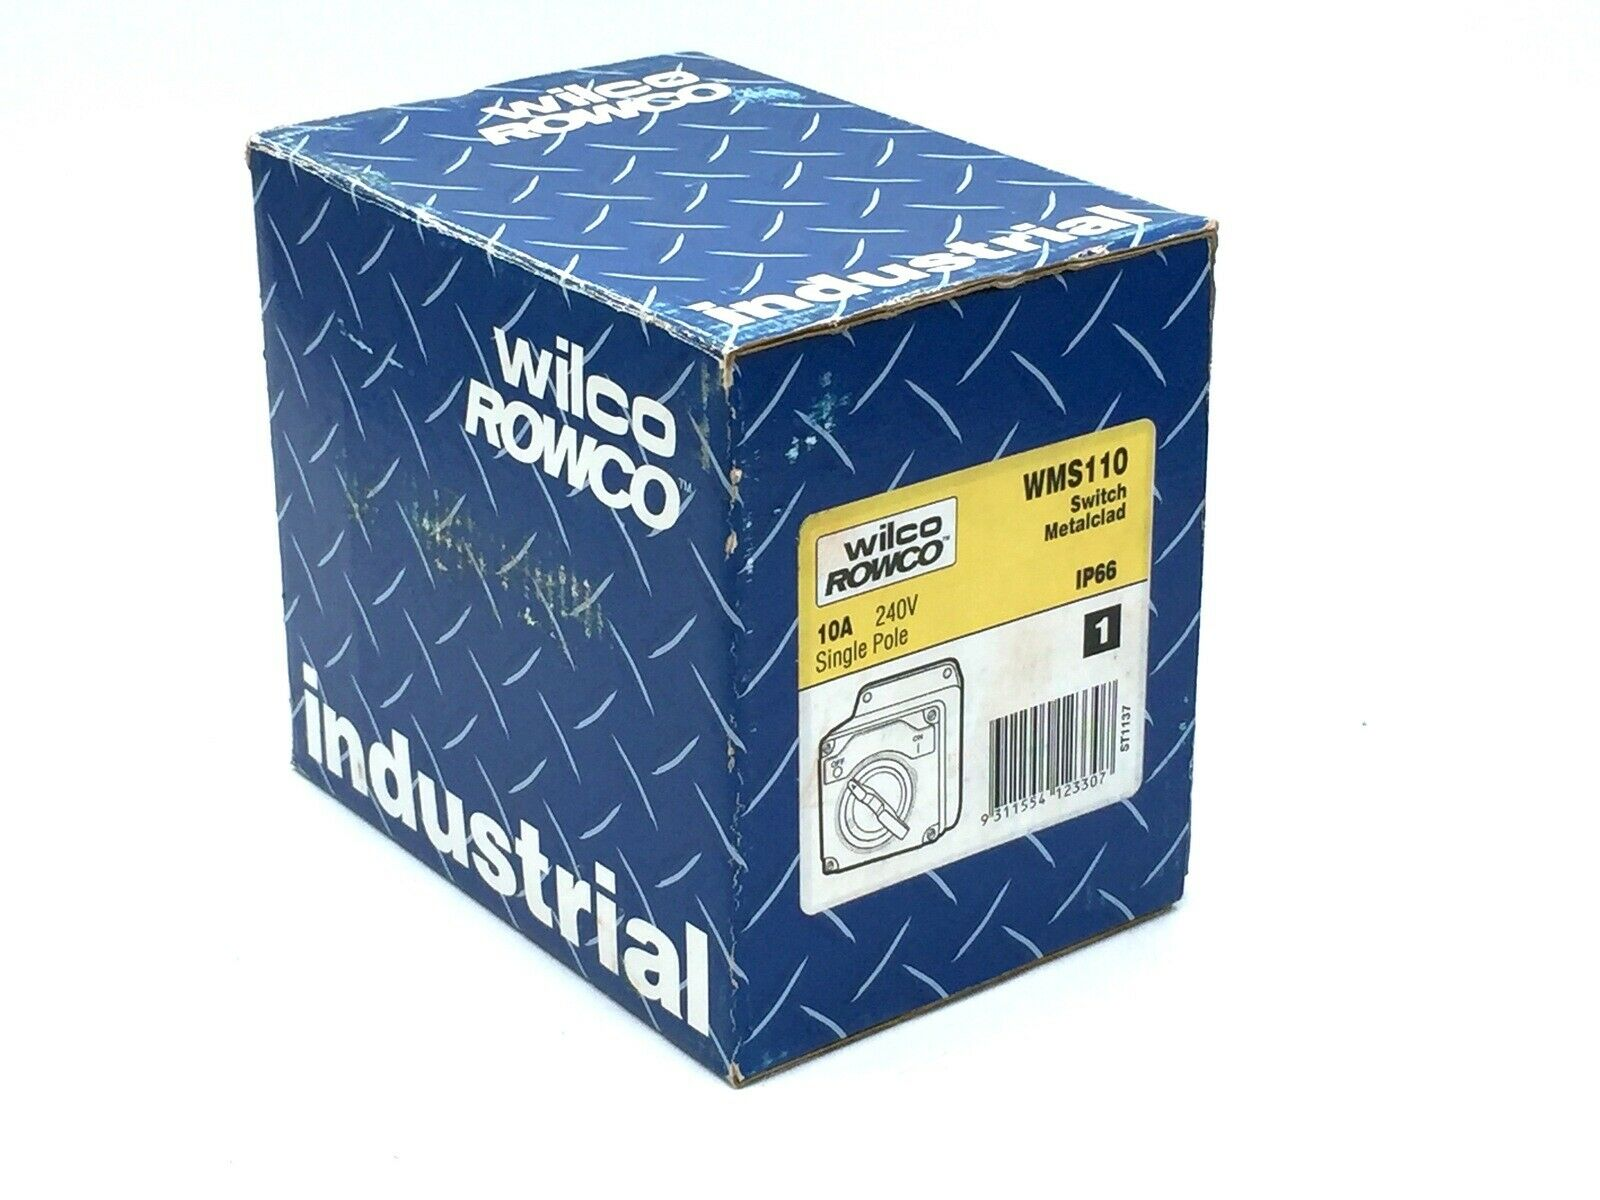 WILCO ROWCO WMS110 SWITCH METAL CLAD IP66 RATED 10A 240V SINGLE POLE WEATHER